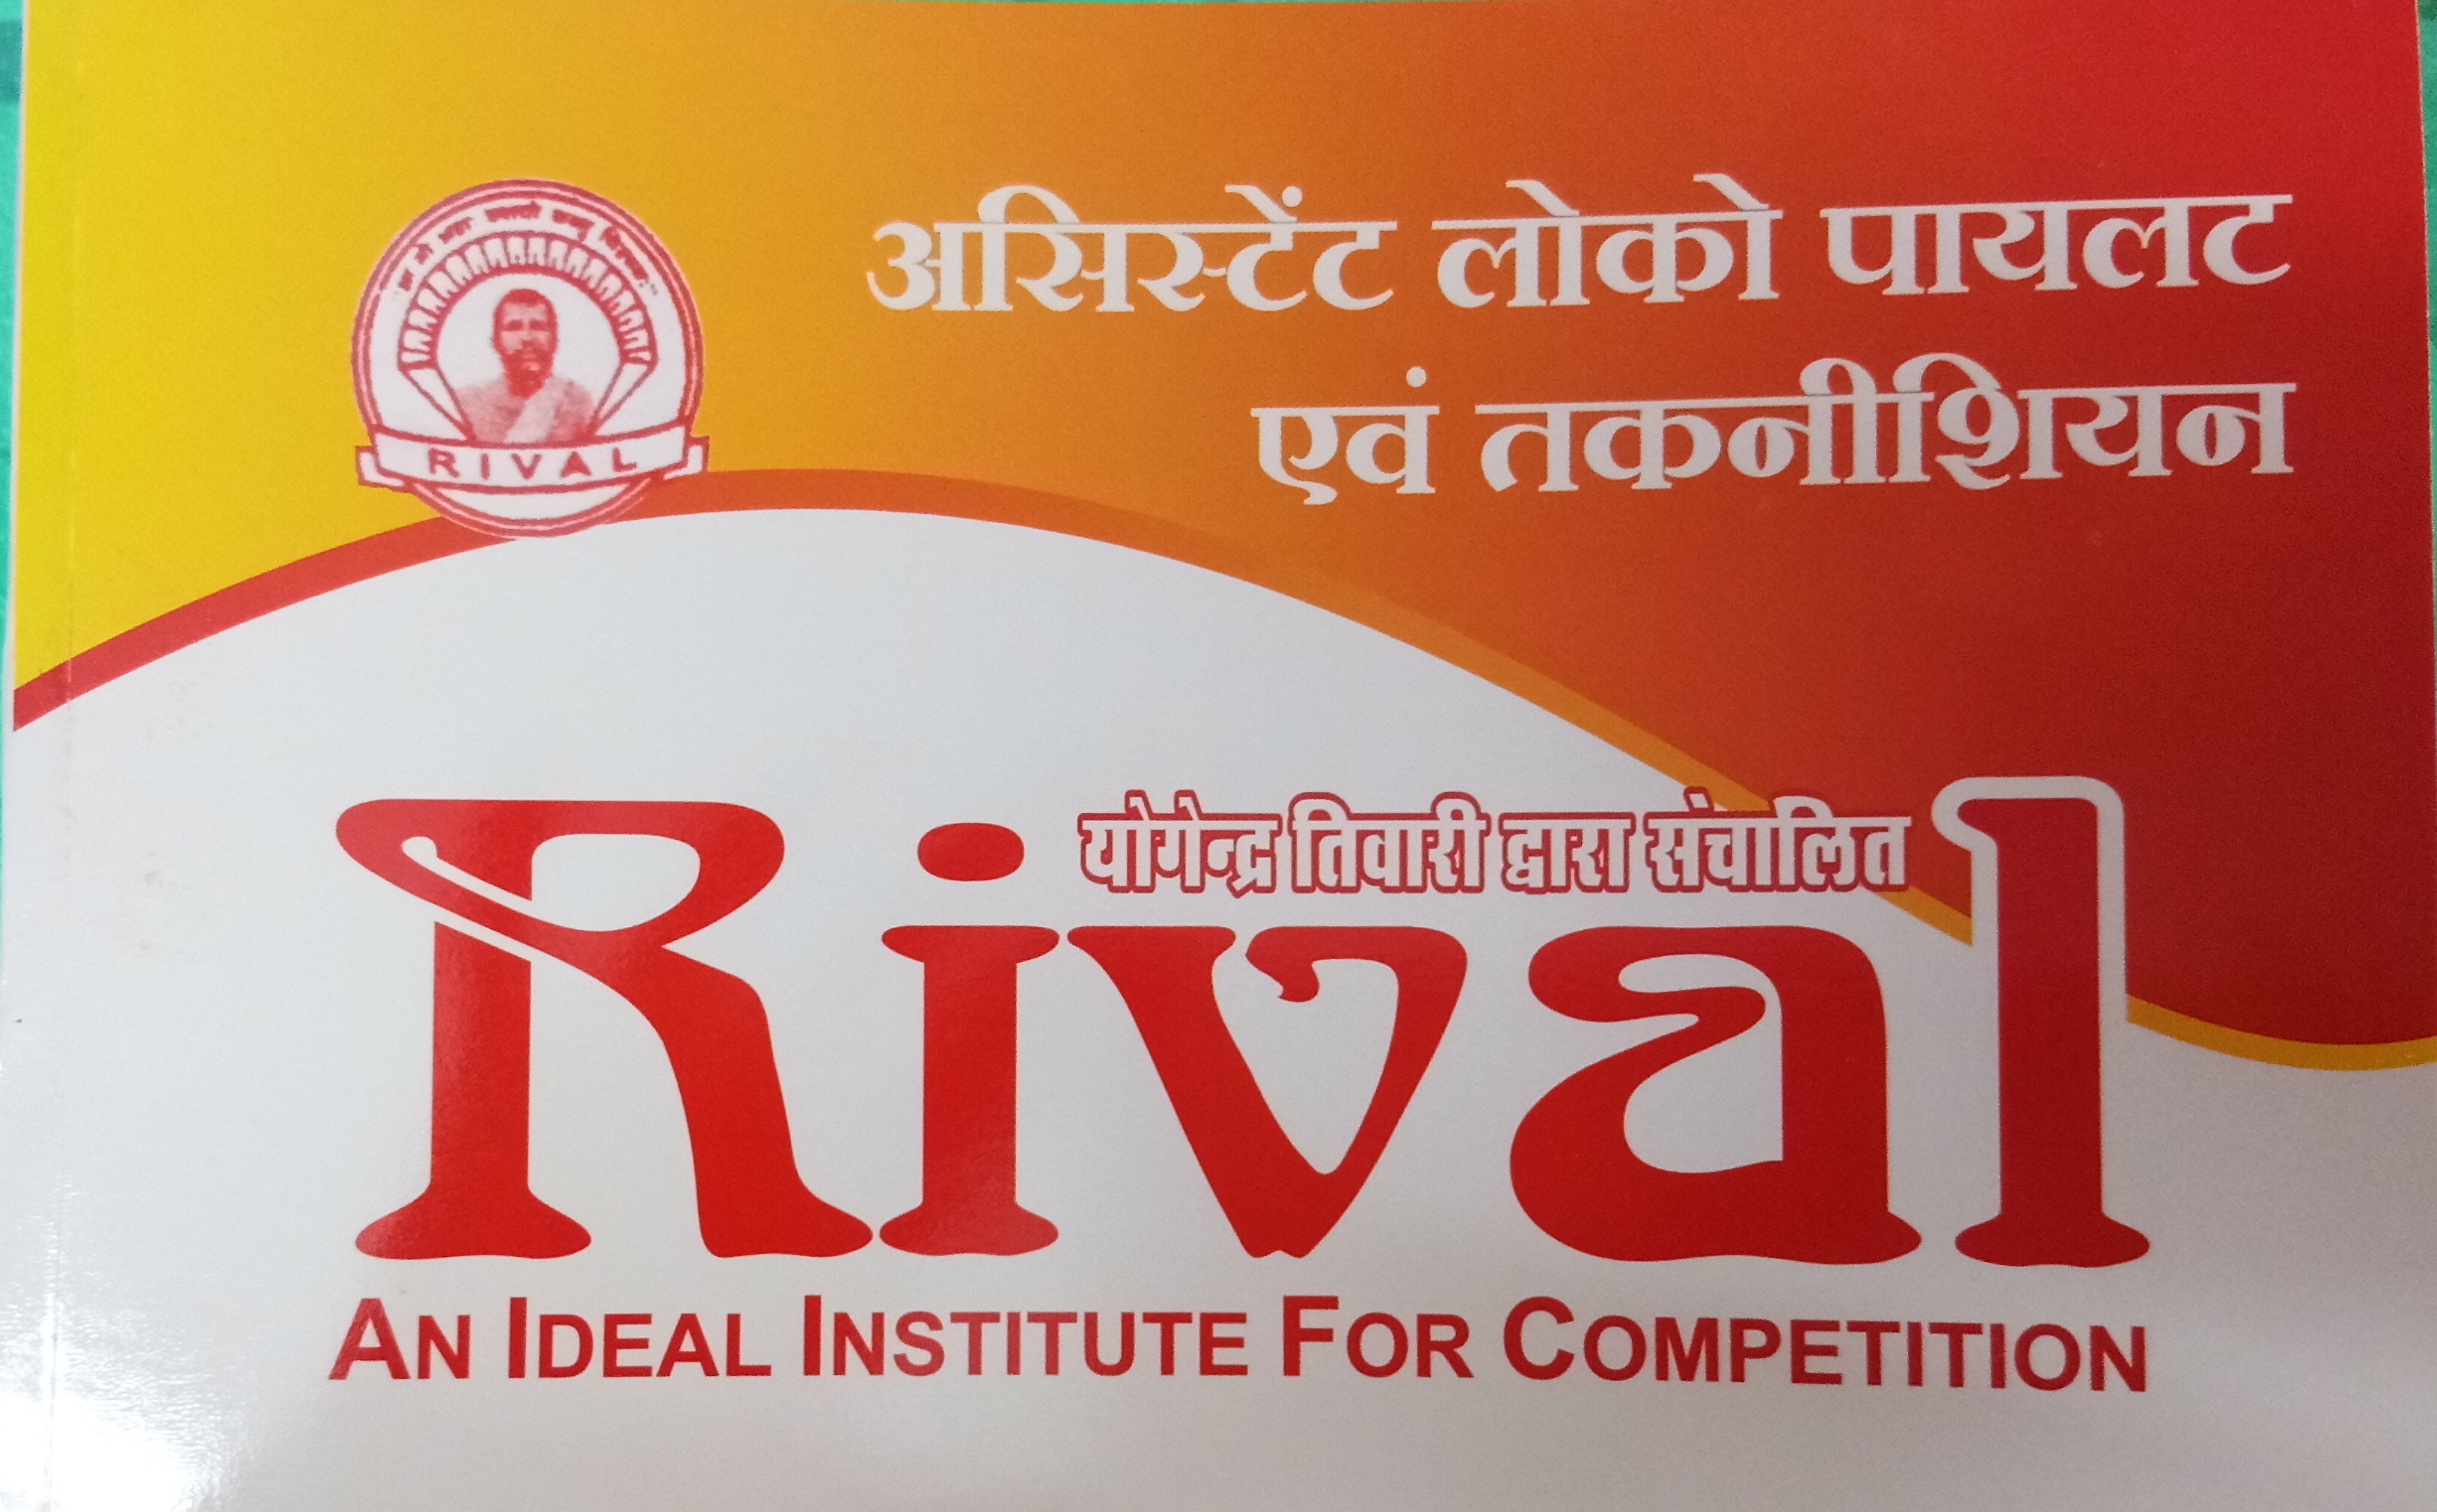 Logo of Rival Institute in Kota